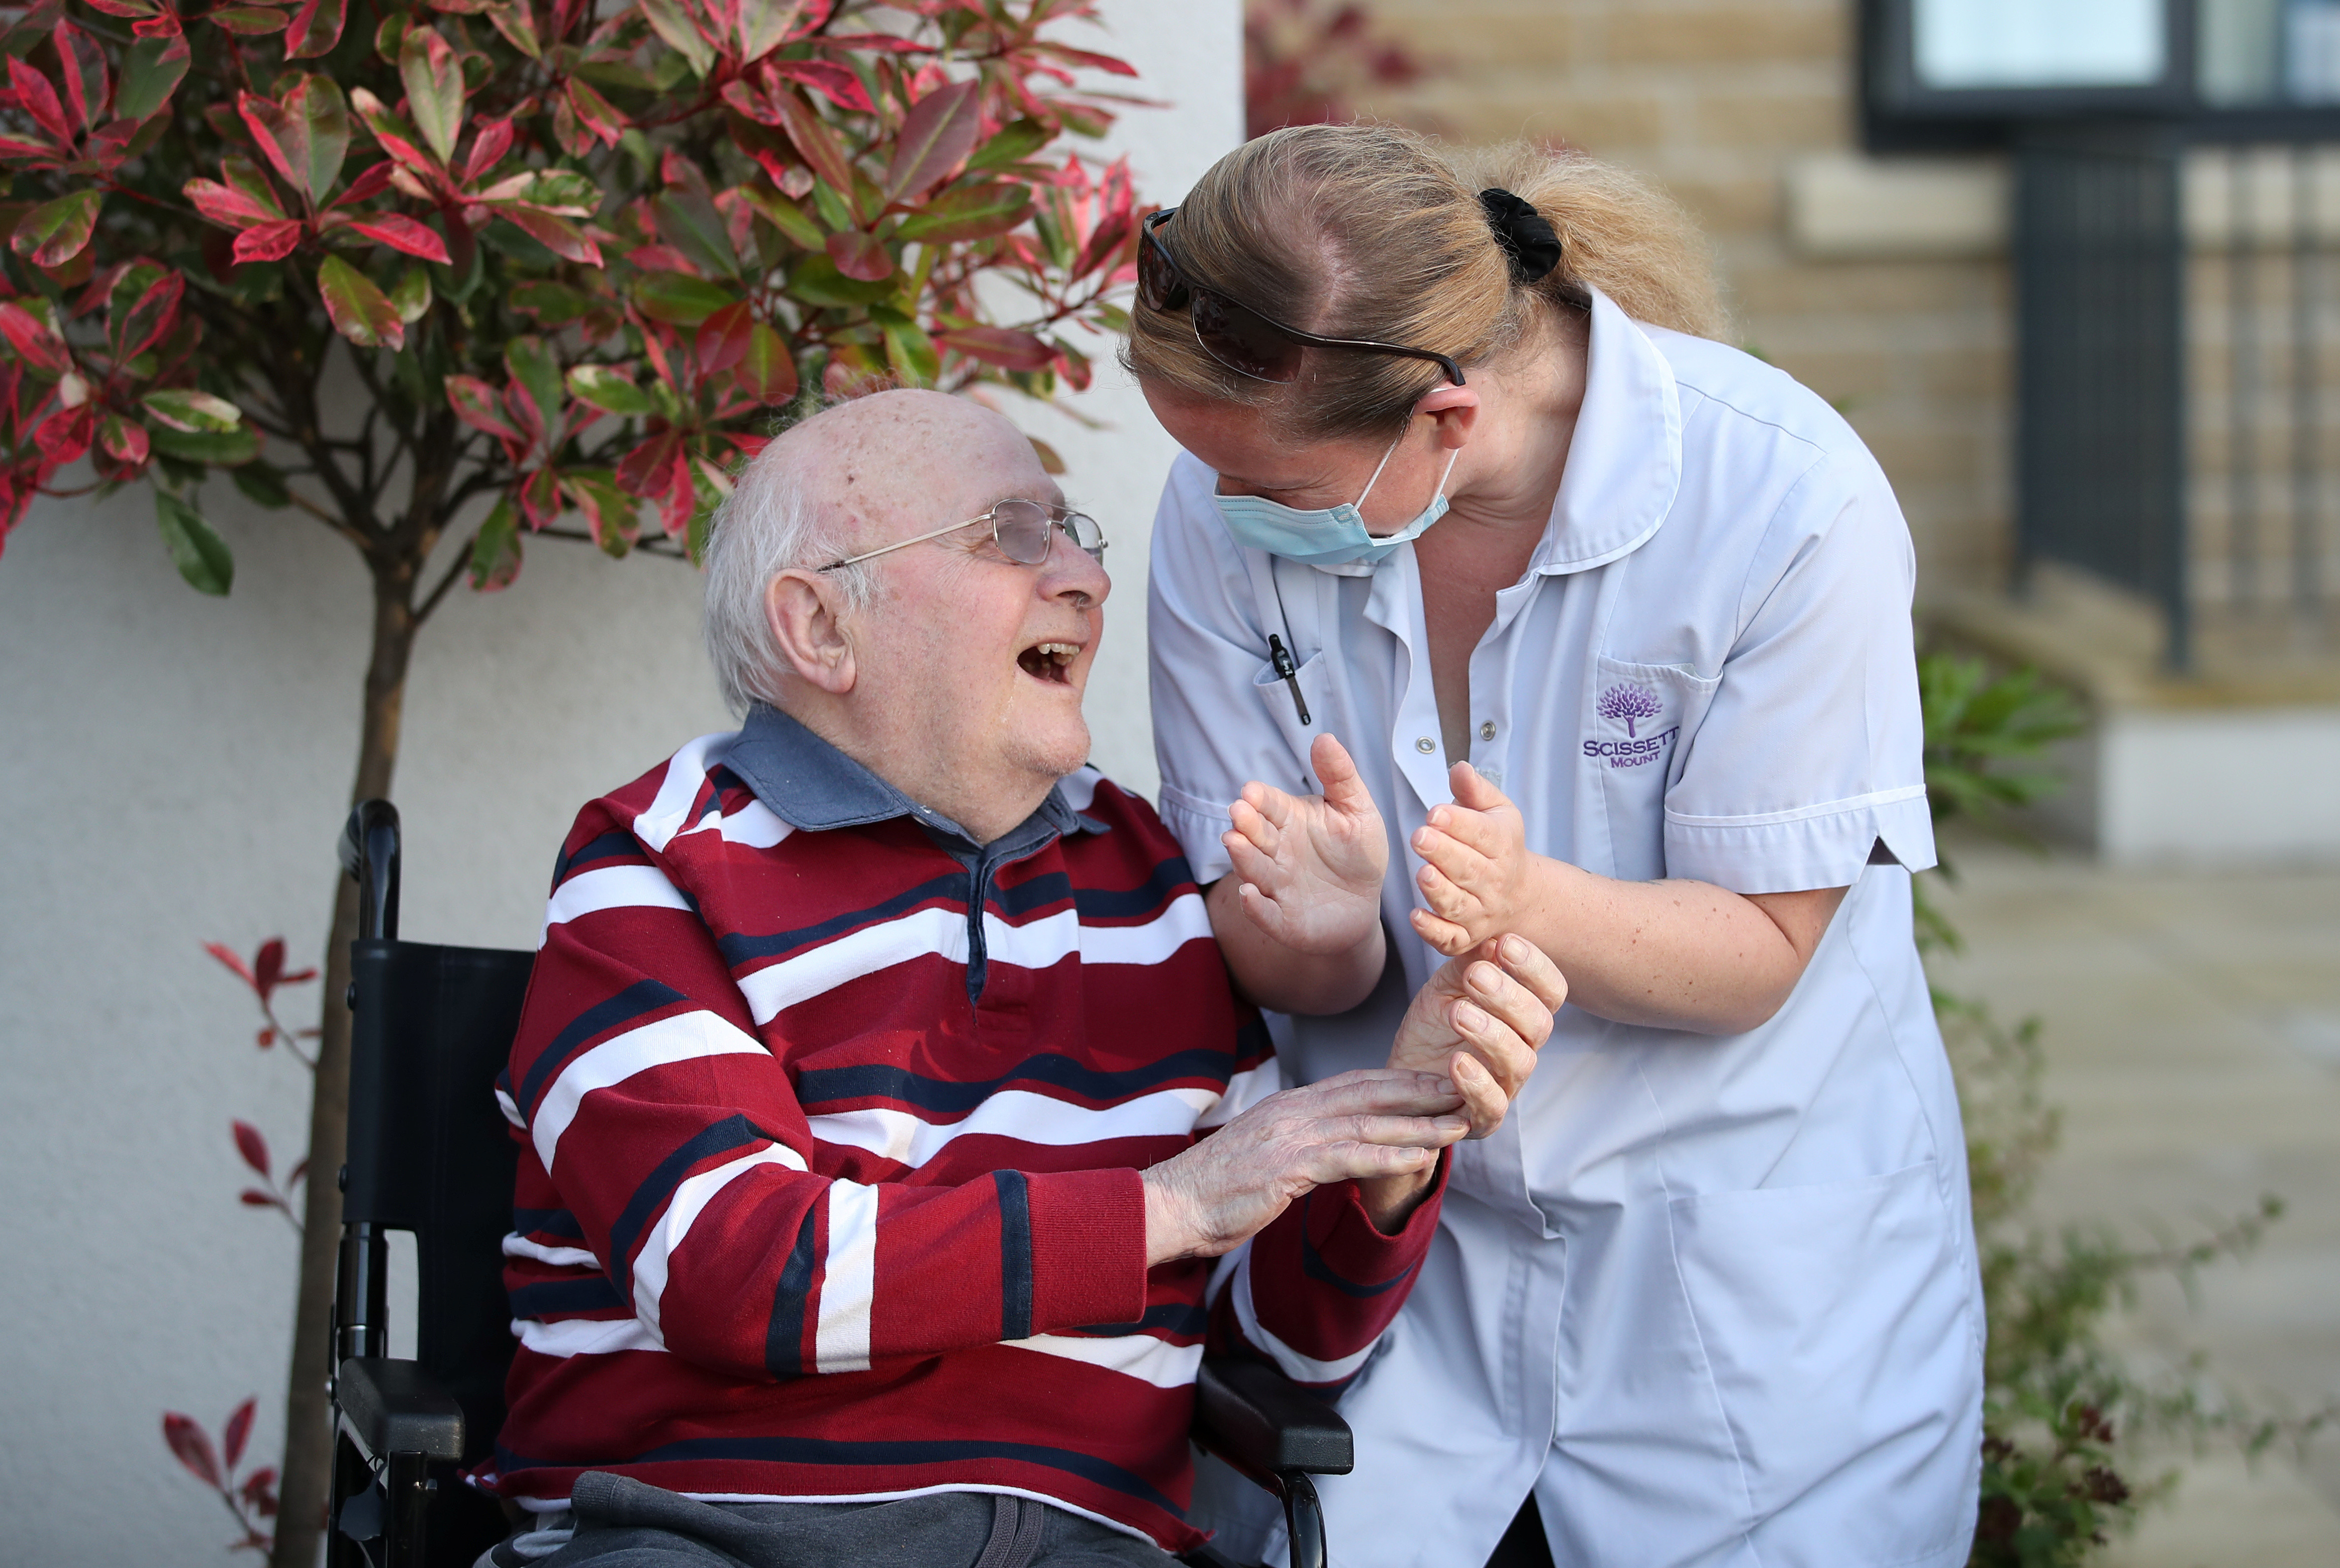 A Care worker and resident of the Scisset Mount Care Home react during the last day of the Clap for our Carers campaign in support of the NHS, following the outbreak of the coronavirus disease (COVID-19), Huddersfield, Britain, May 28, 2020.